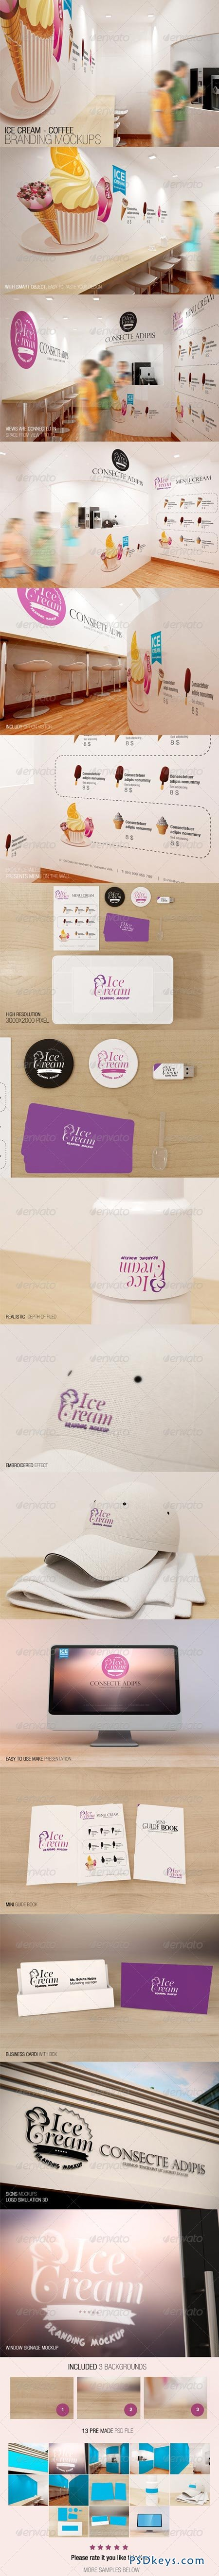 Ice Cream - Coffee Branding Mockups 7228959